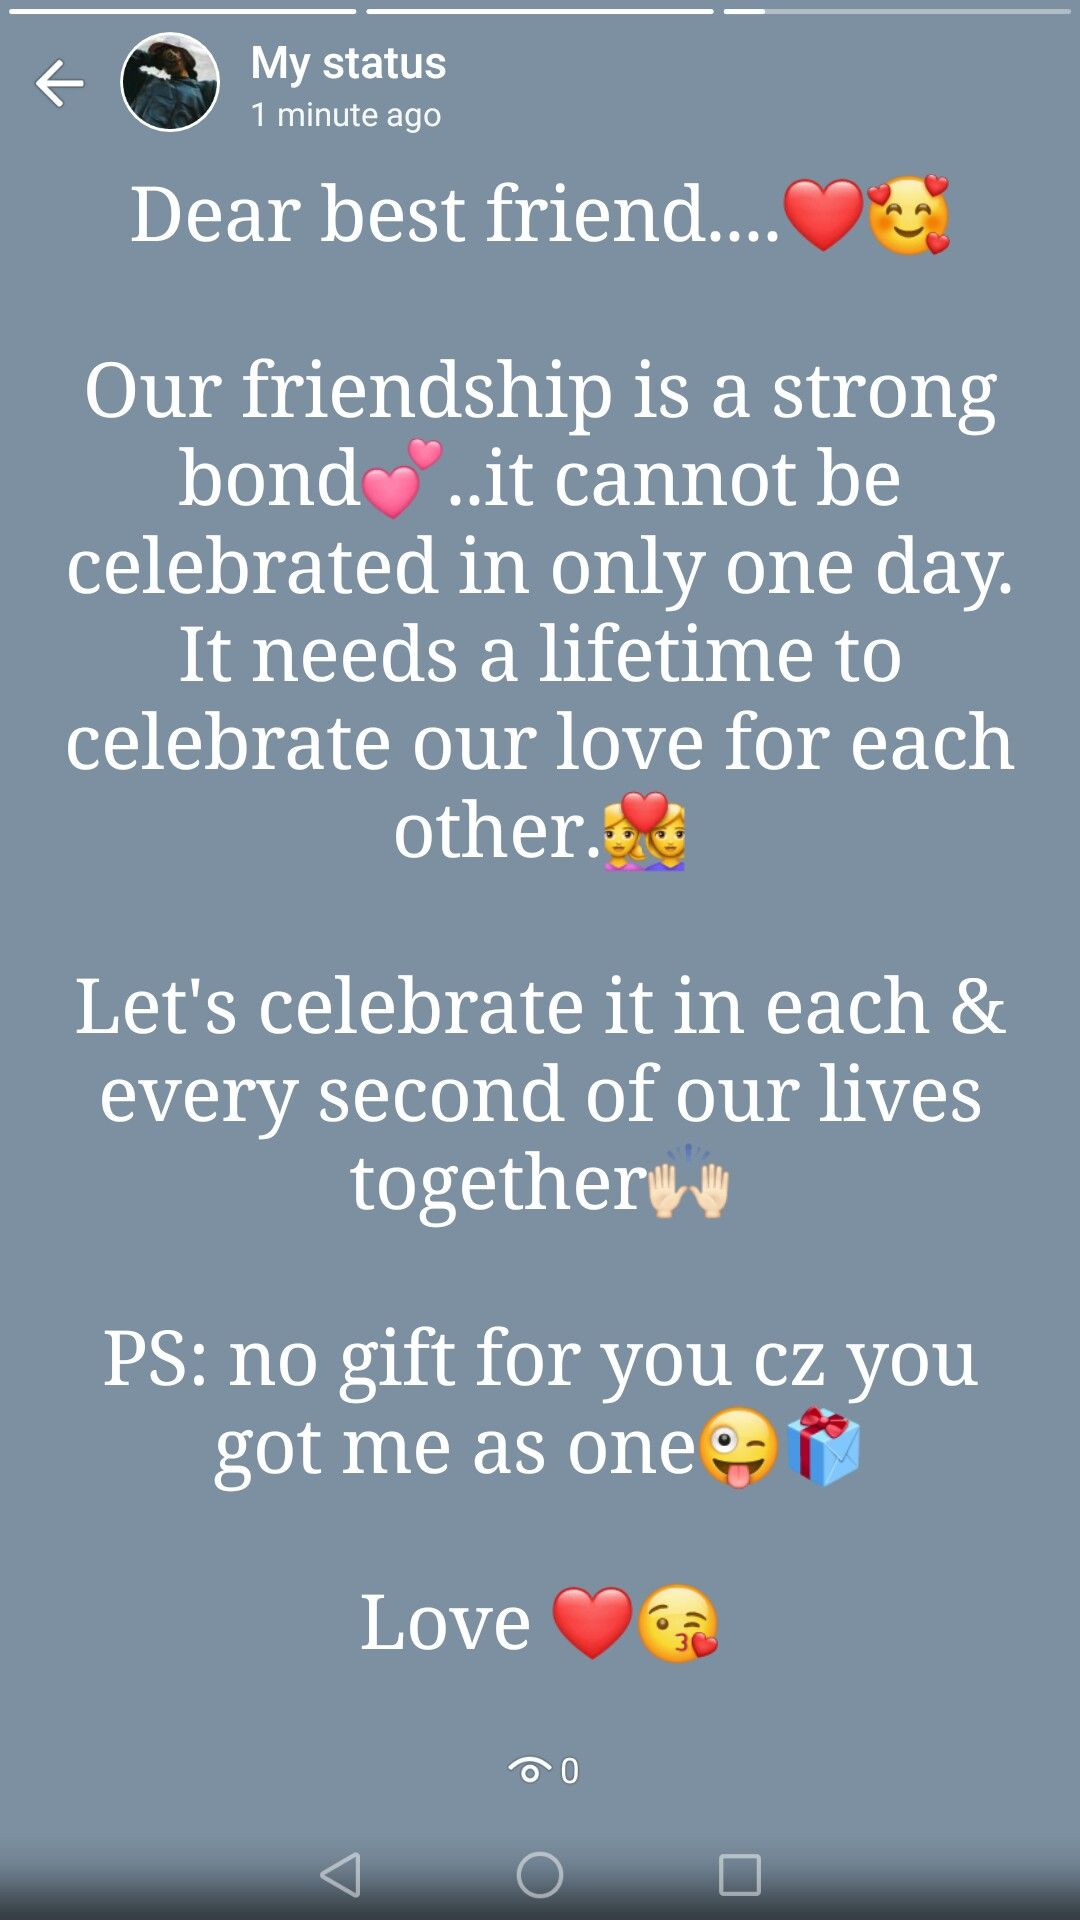 Pin By Siti Najmah On B E I N G M E Happy Birthday Best Friend Quotes Friend Birthday Quotes Birthday Wishes Quotes